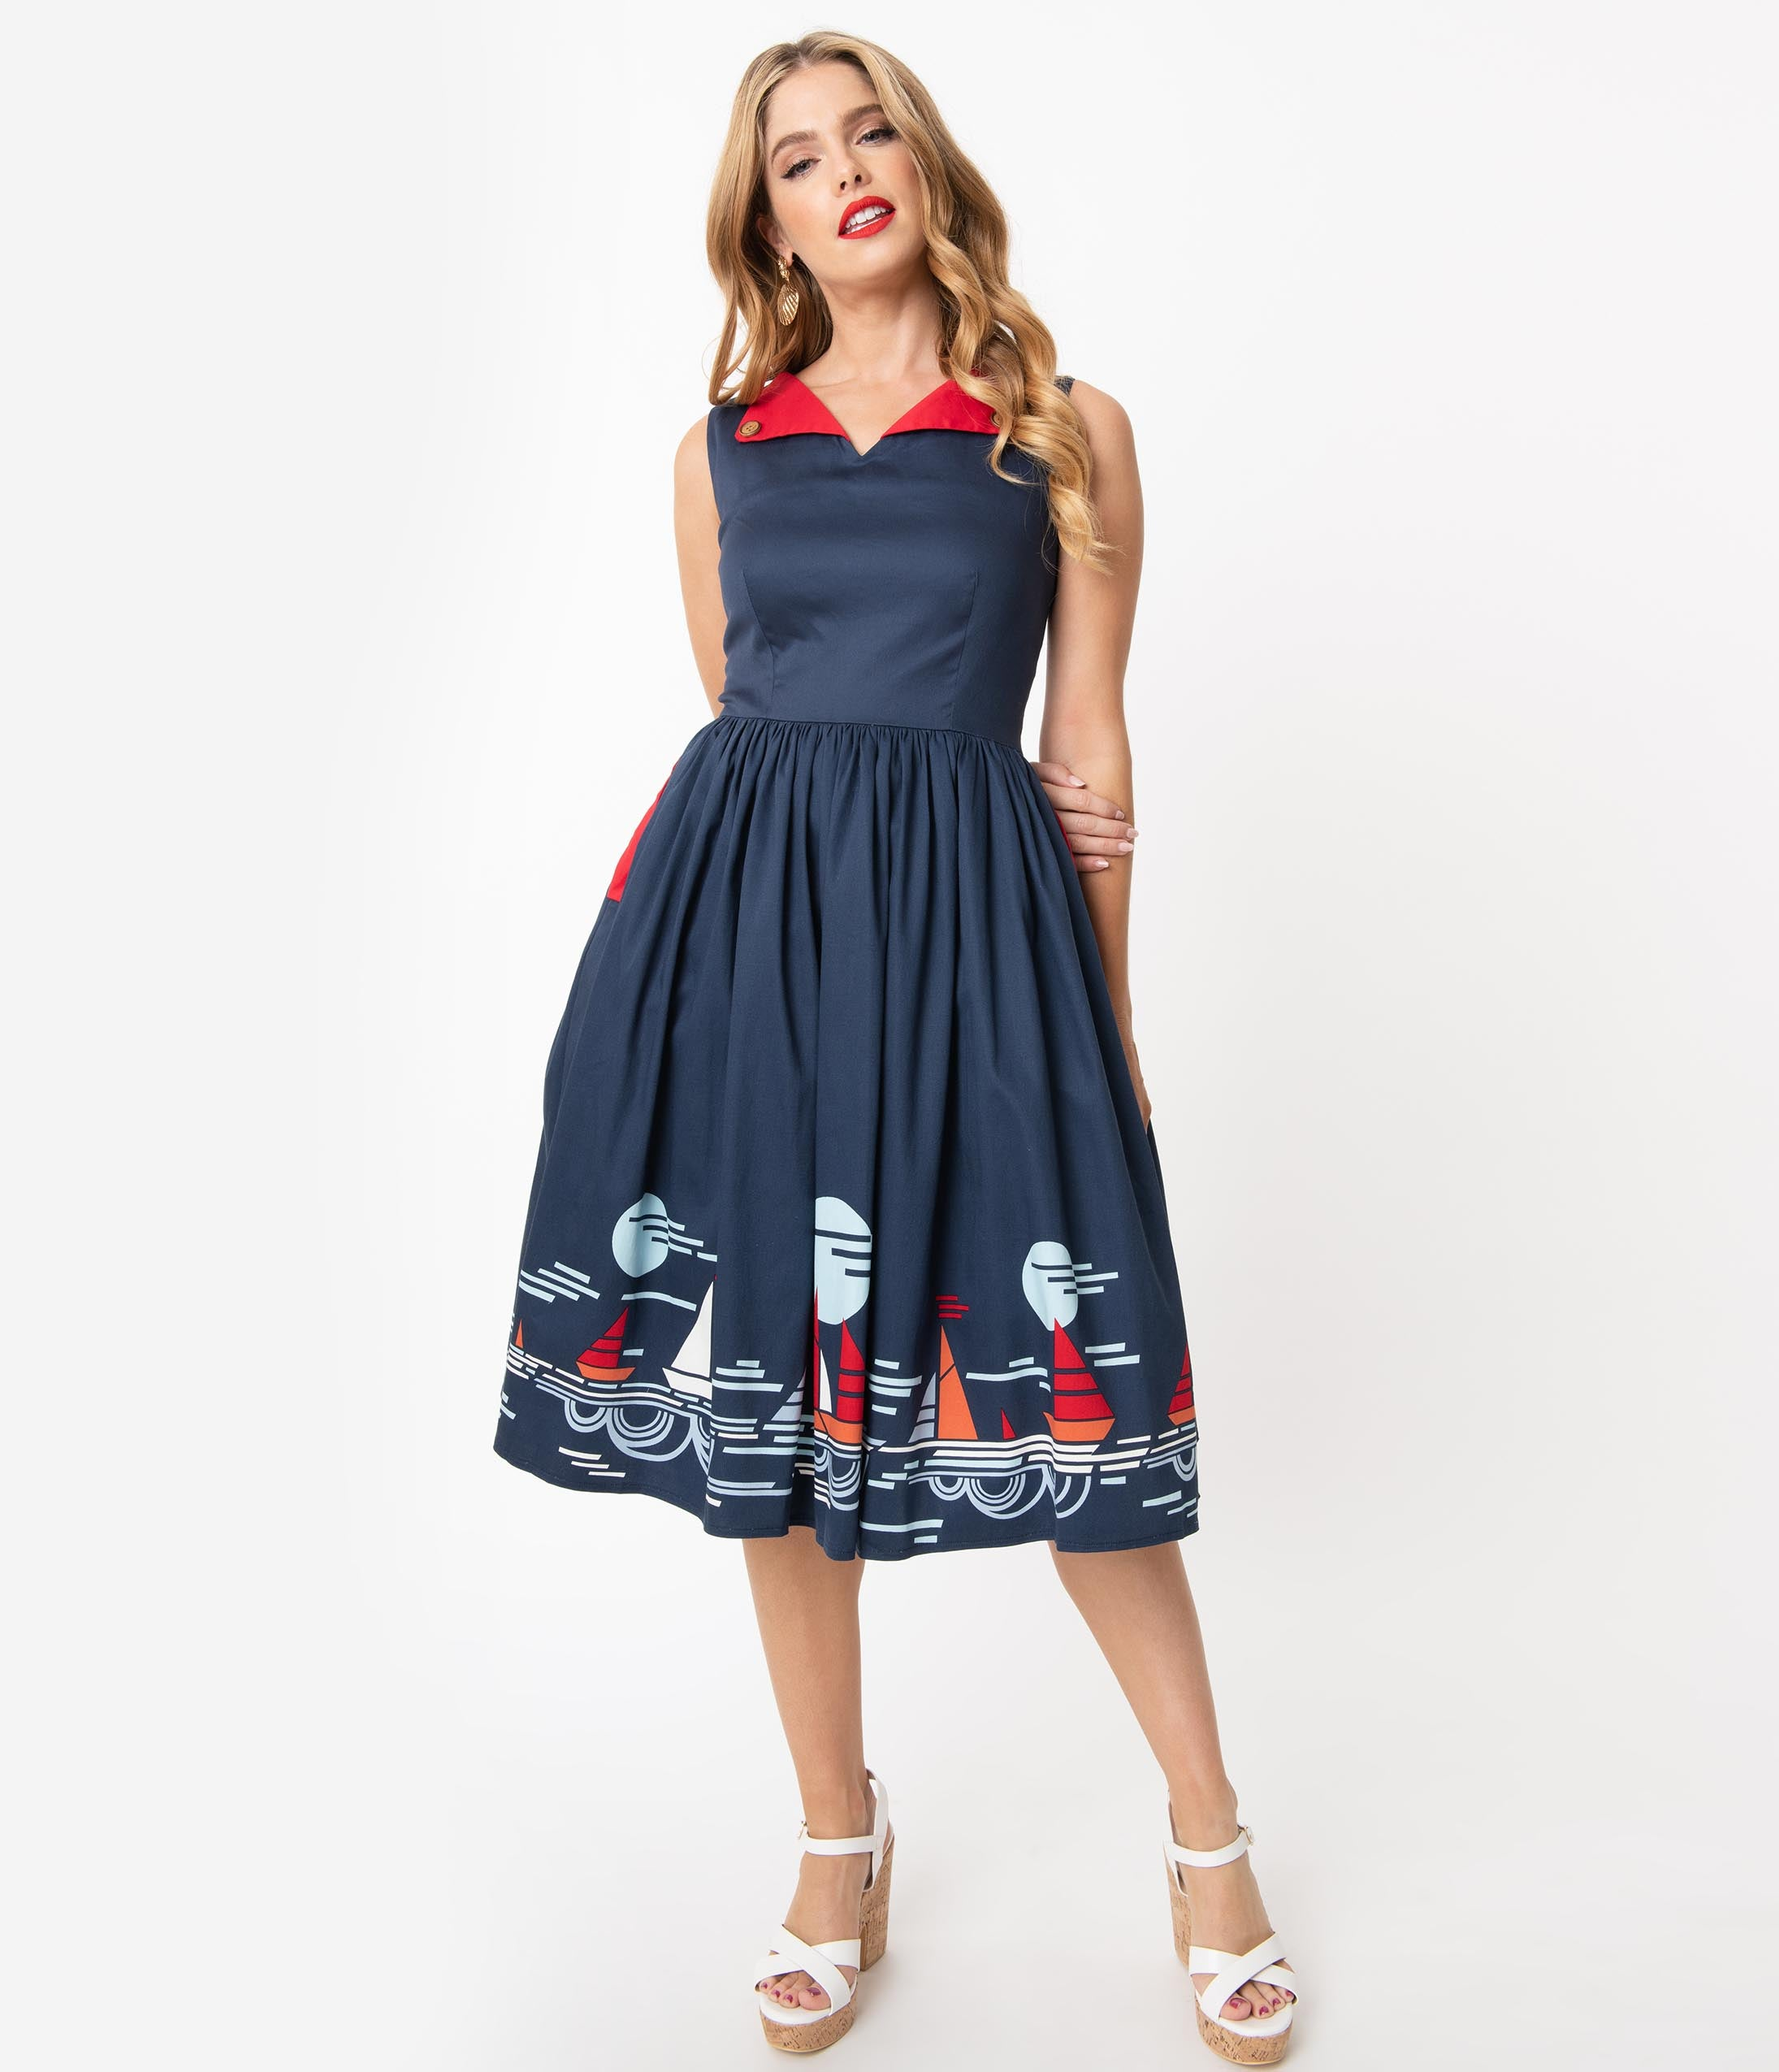 500 Vintage Style Dresses for Sale | Vintage Inspired Dresses 1950S Style Navy Summer Sailing Scene Swing Dress $78.00 AT vintagedancer.com